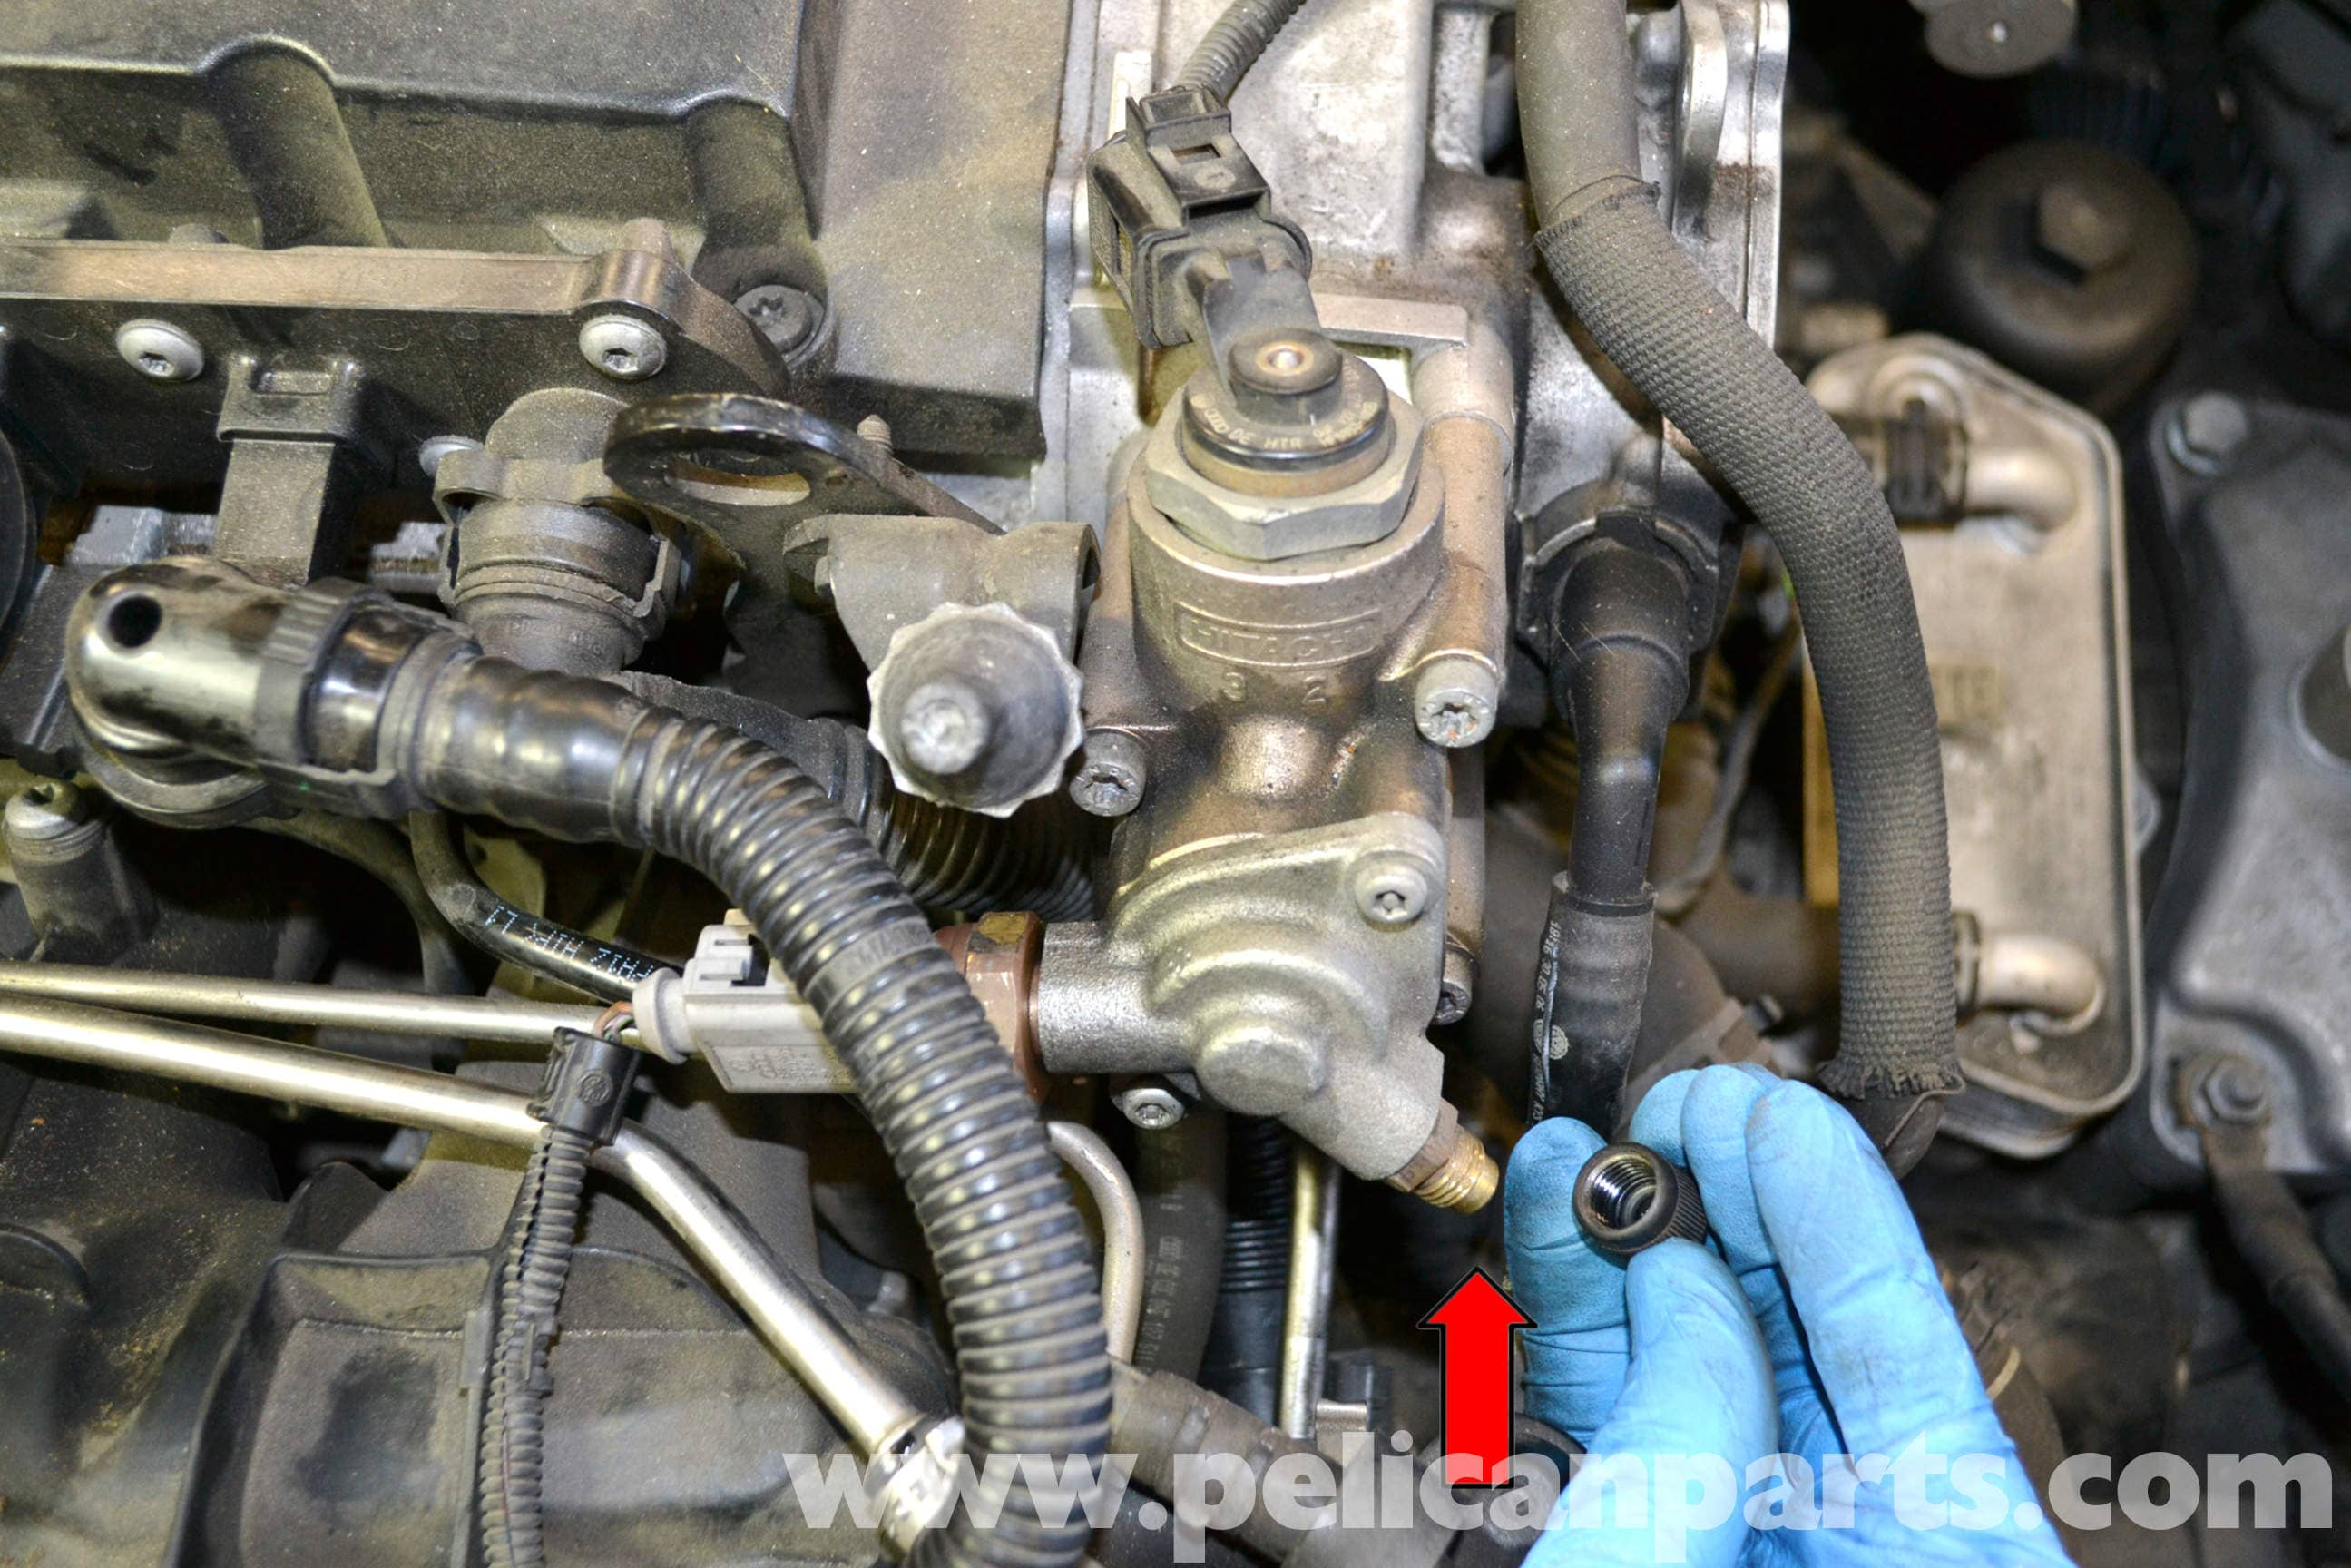 Volkswagen Golf Gti Mk V High Pressure Fuel Pump Replacement 2006 Large Image Extra